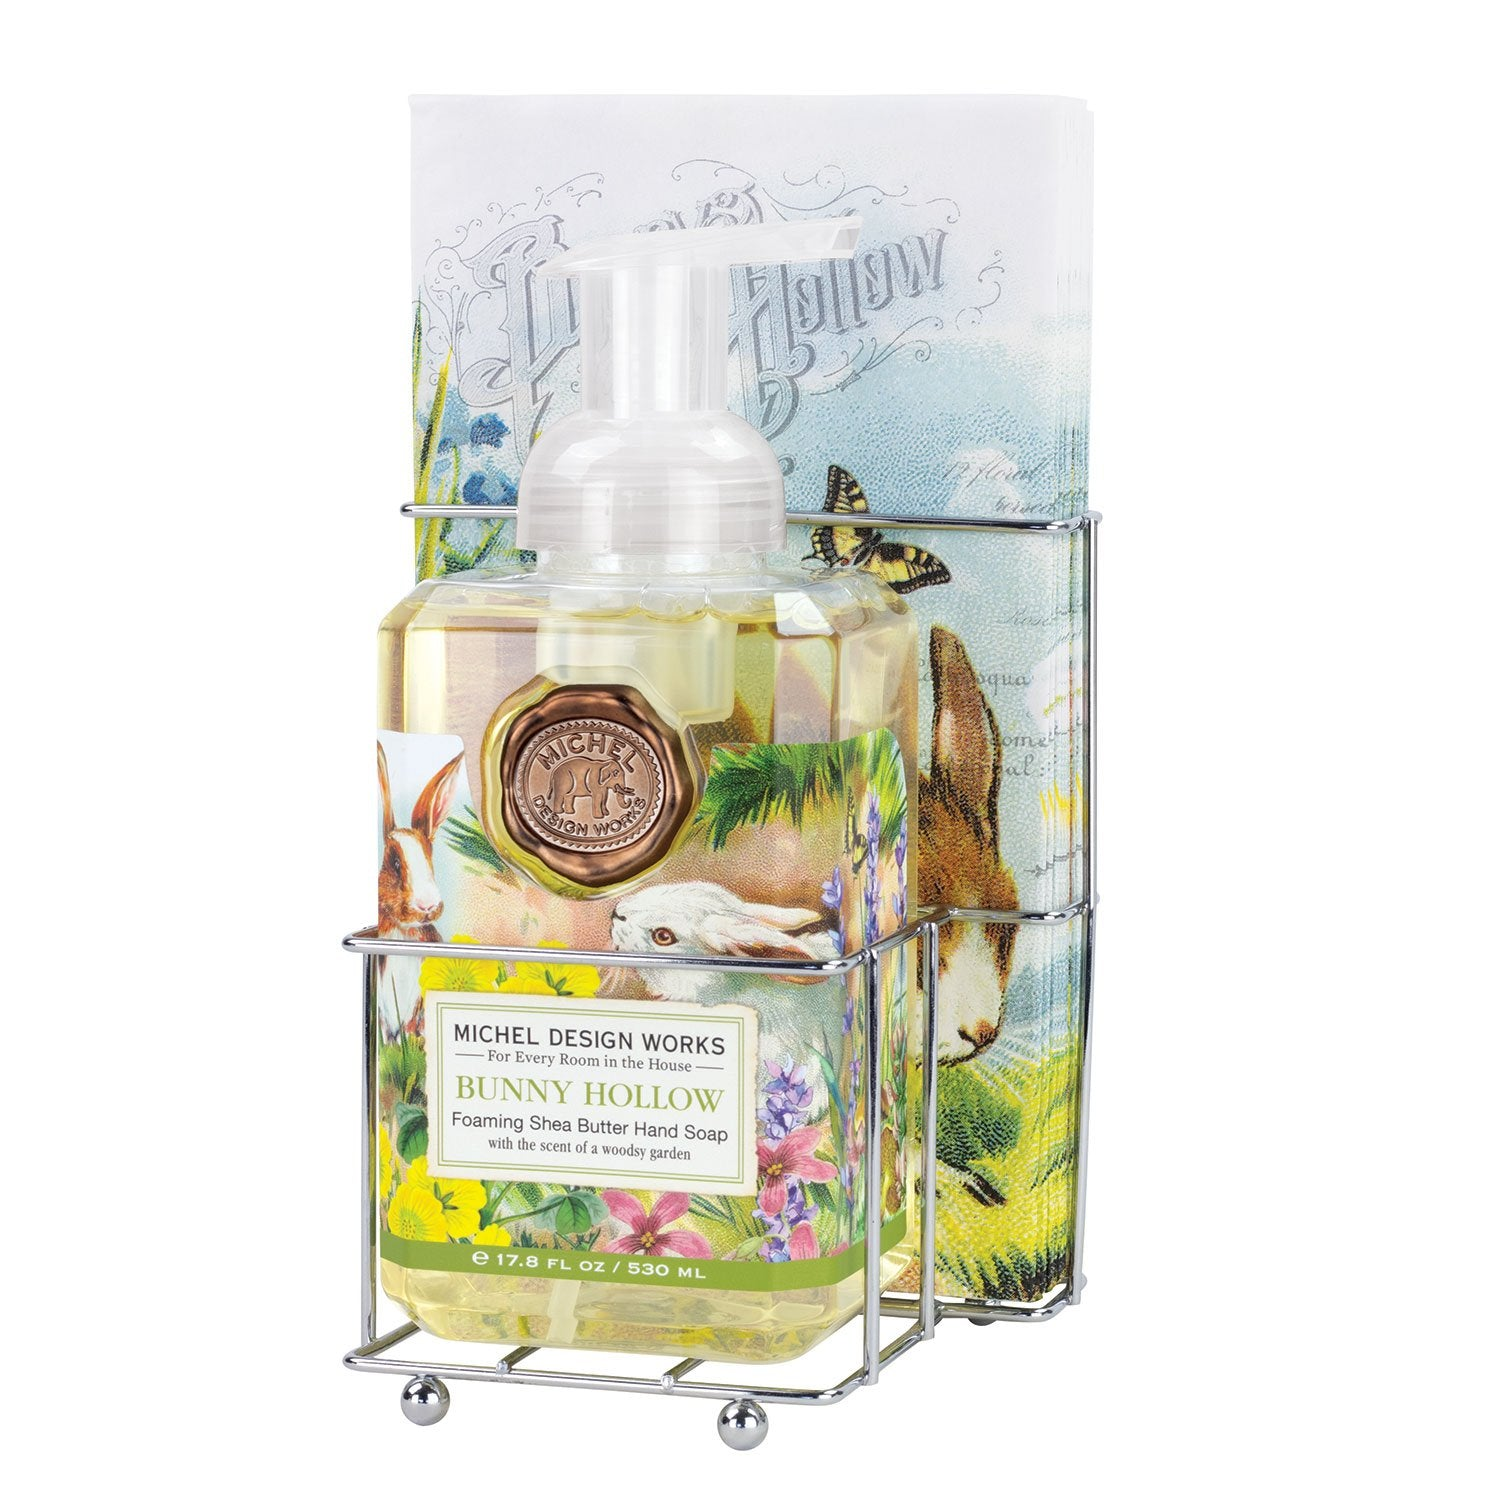 Bunny Hollow Foaming Hand Soap Napkin Set